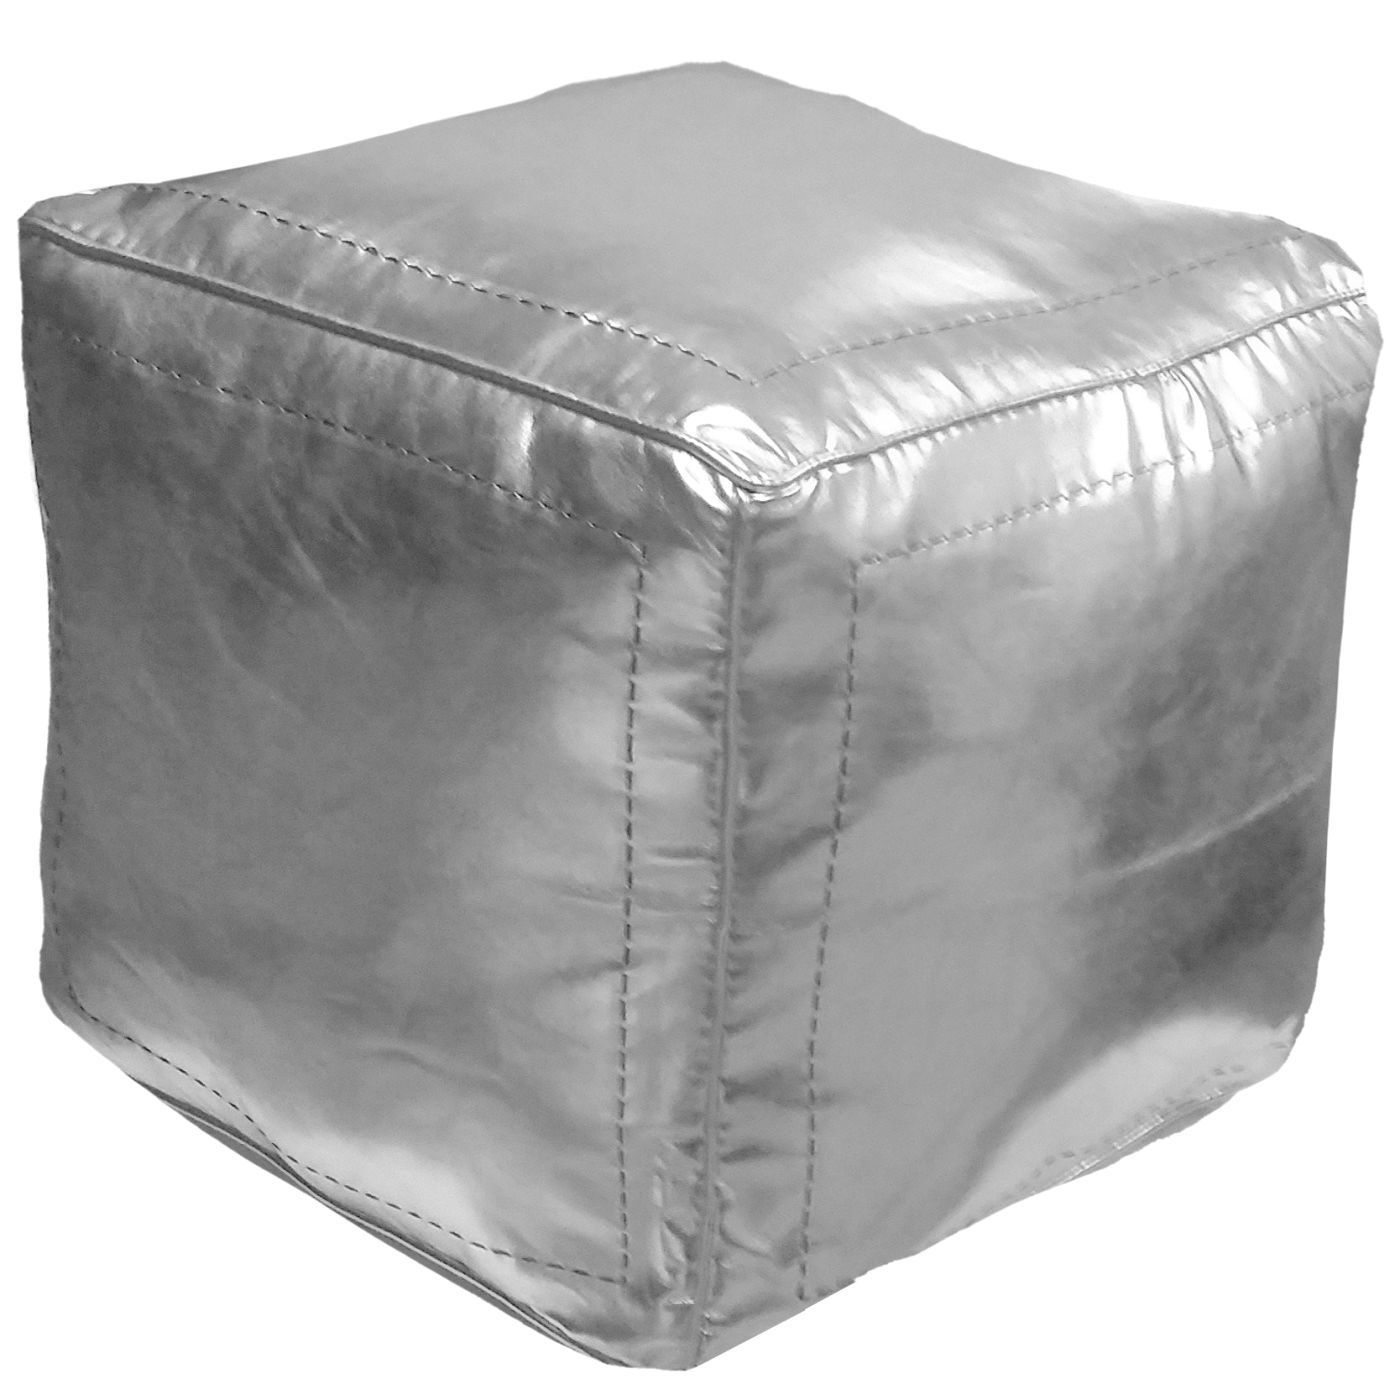 Moroccan Leather Pouf Design Sit Down Pinterest Leather Square Moroccan Leather Poufs Silver Square Eco Leather Size 16